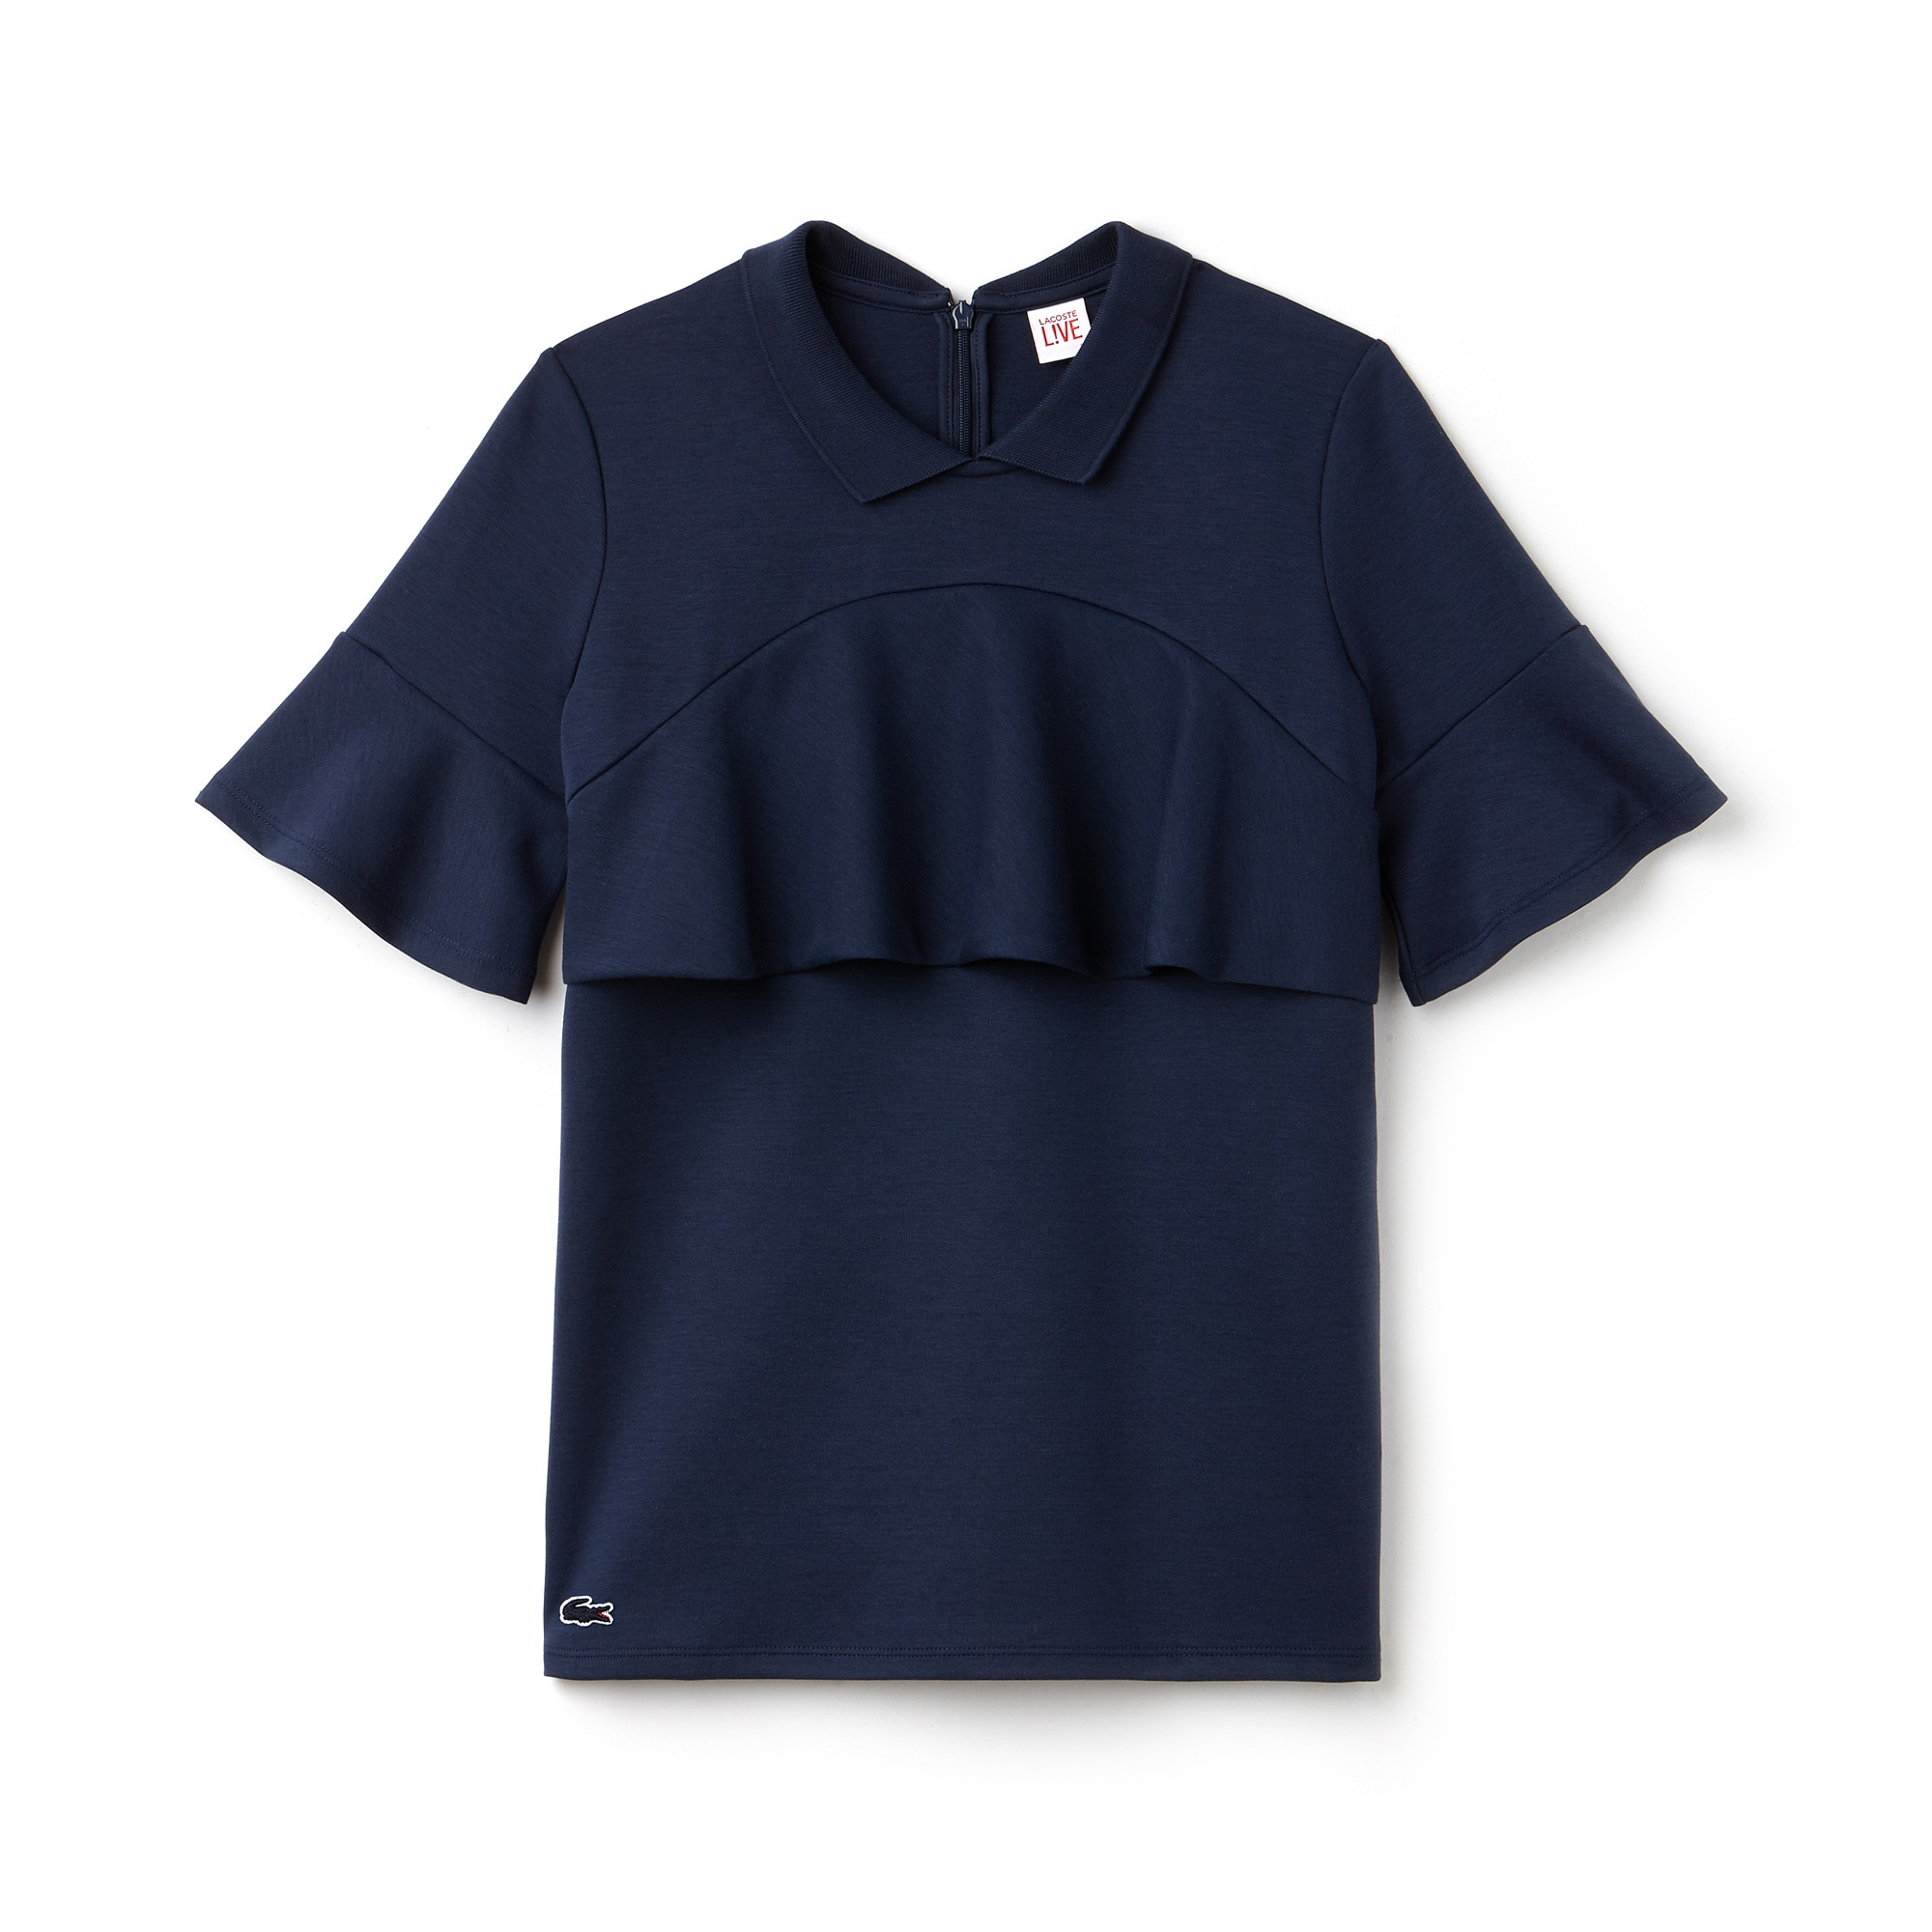 Lacoste LIVE-polo dames boxy pasvorm jersey met ruches